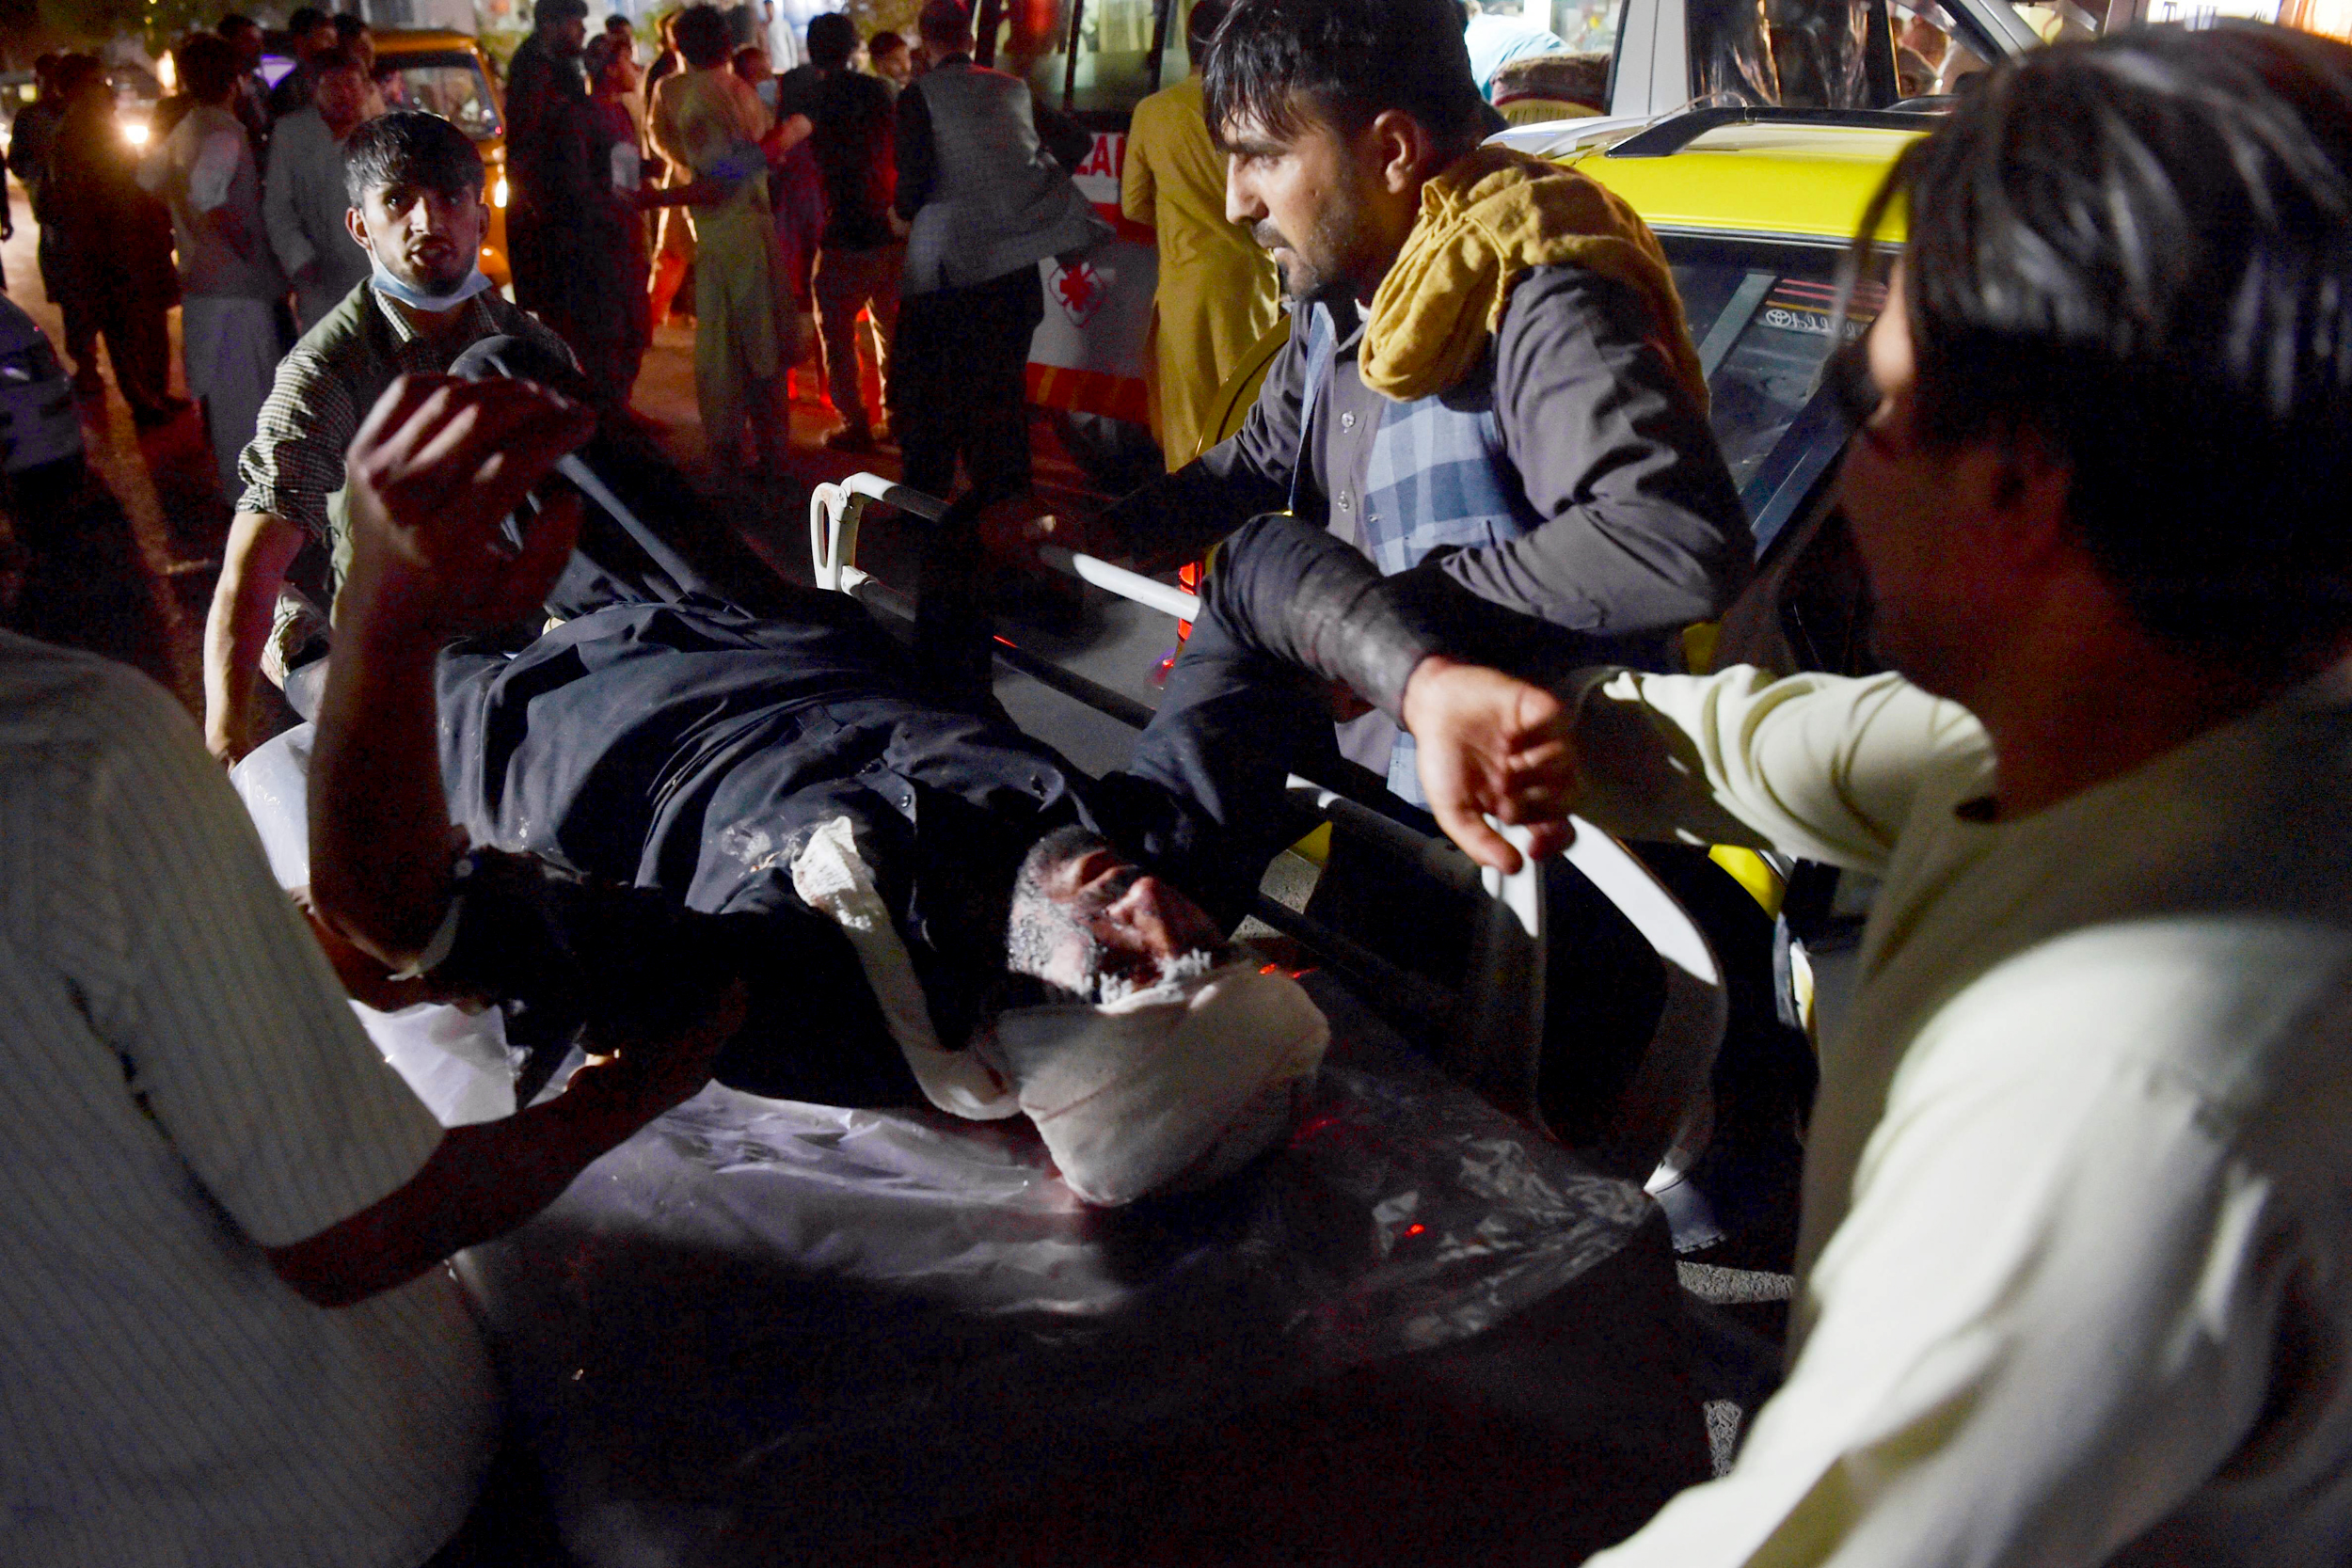 Two explosions outside Kabul airport leave U.S., civilian casualties amid evacuations